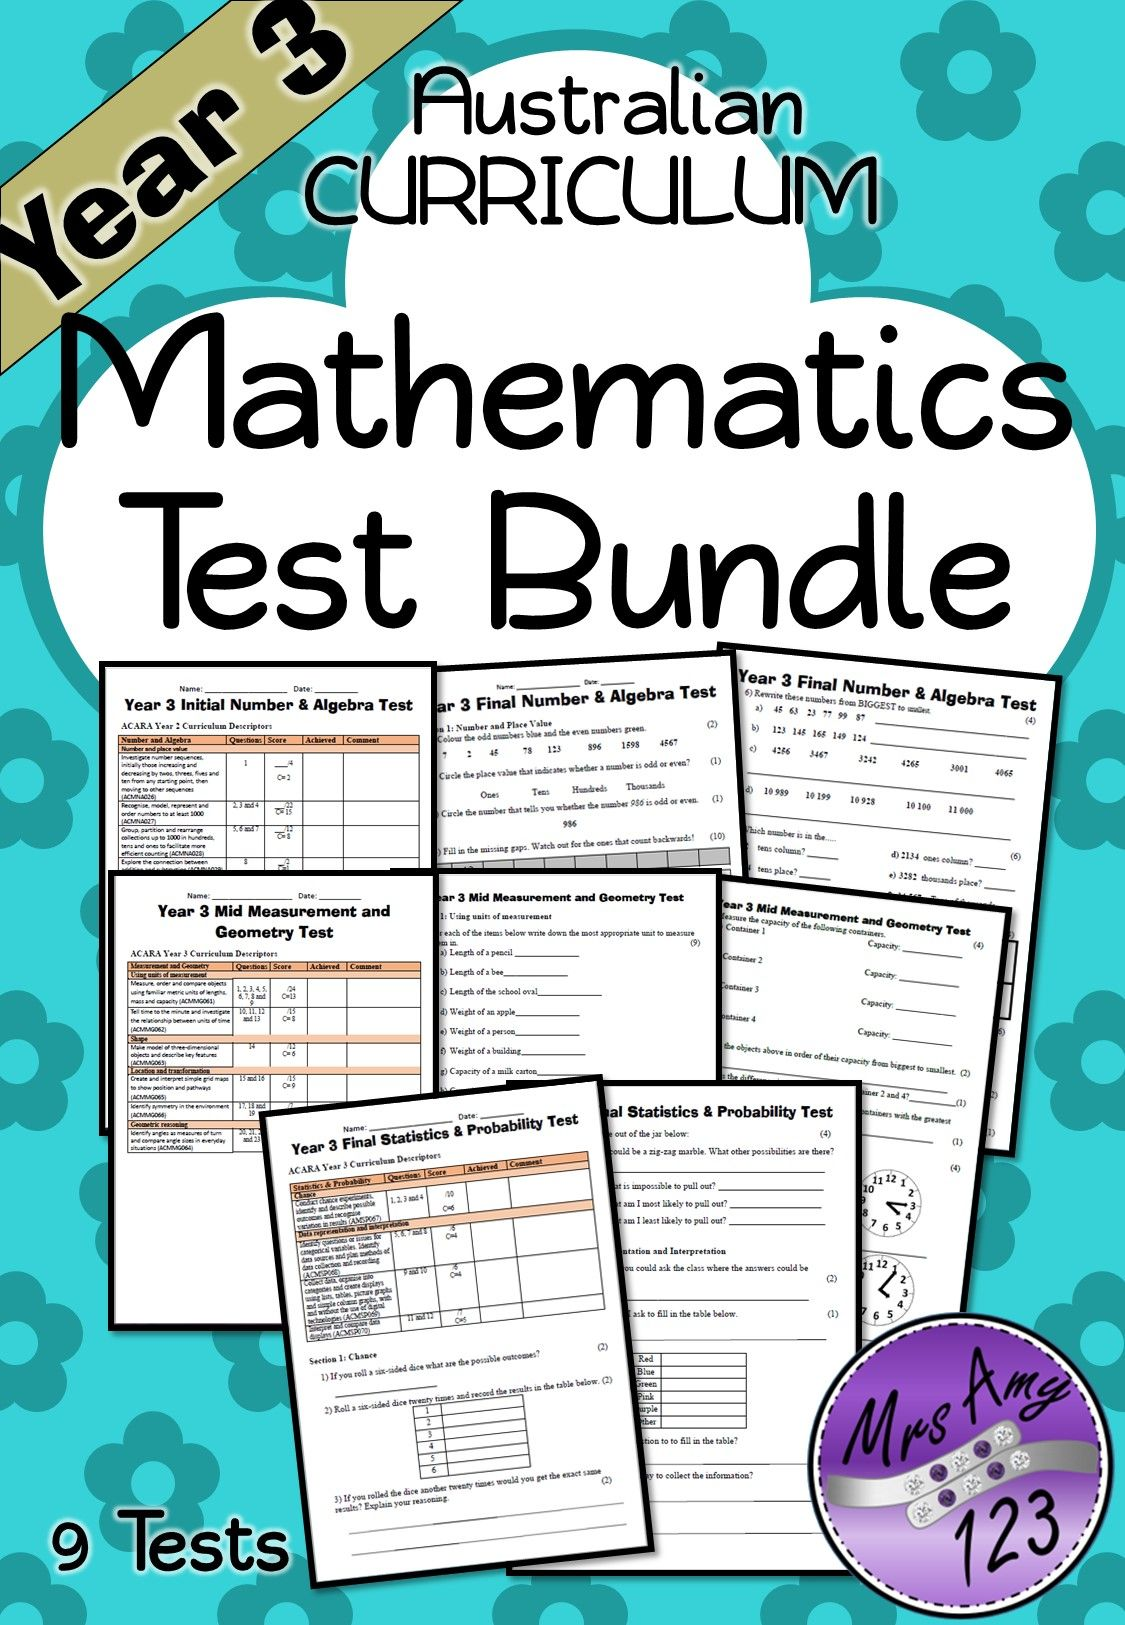 Mathematics Test Bundle School Pinterest